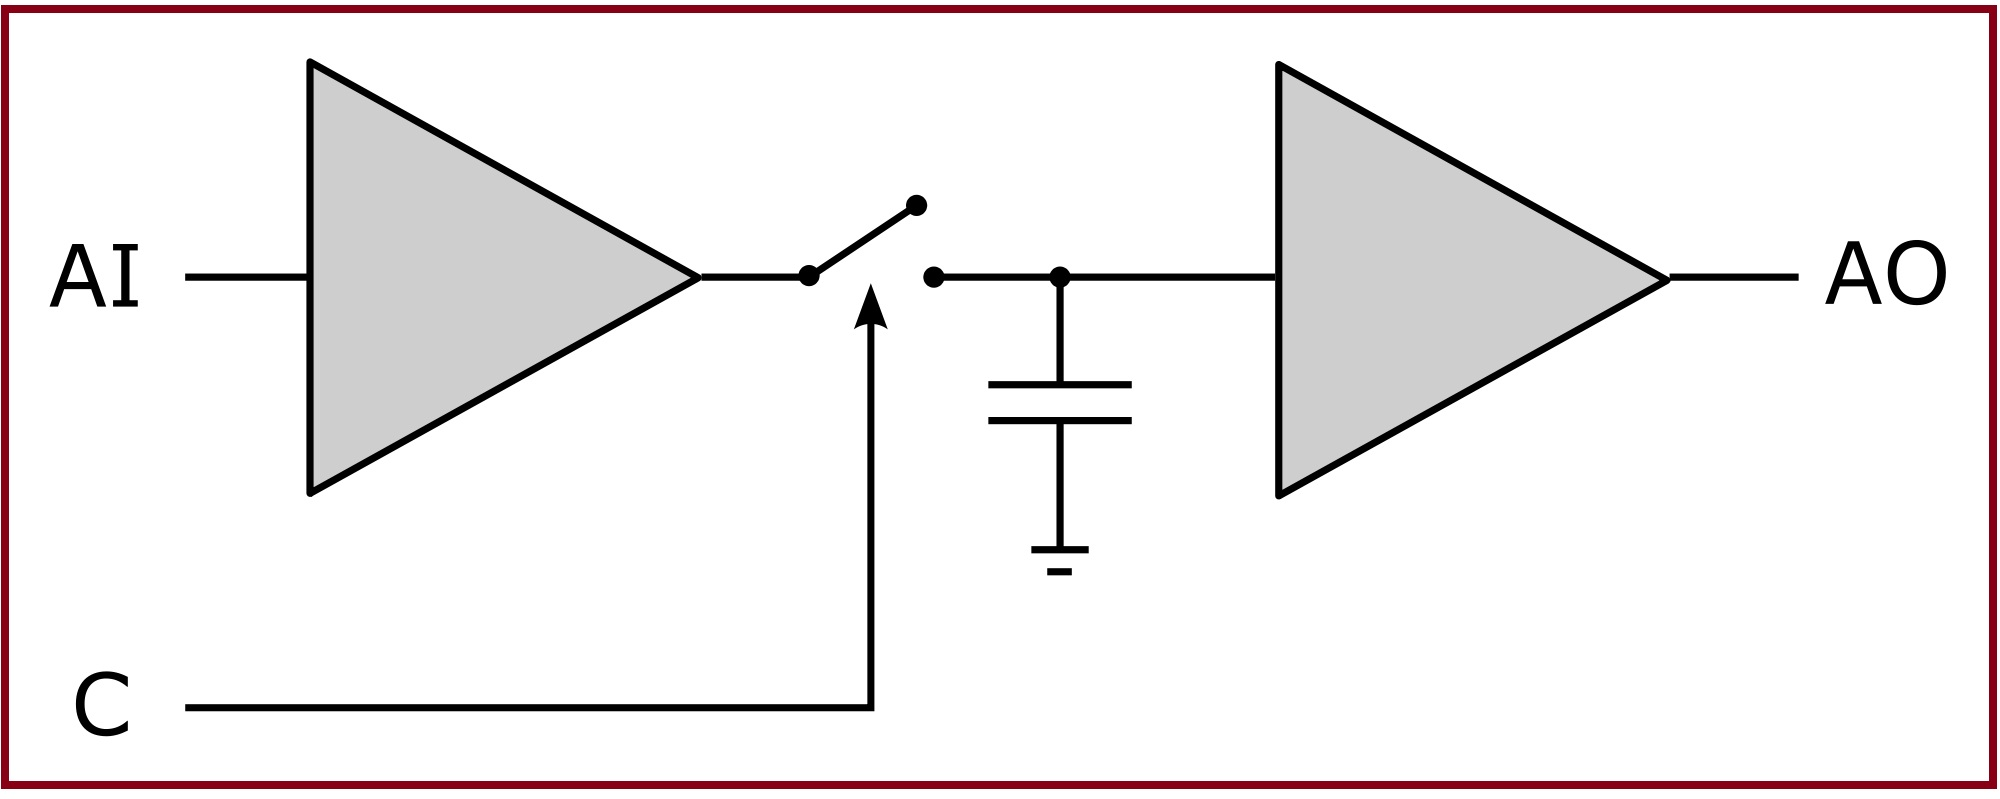 Designing Of A Sample And Hold Circuit Using Op Amp Fet Voltmeter Schematic Diagram